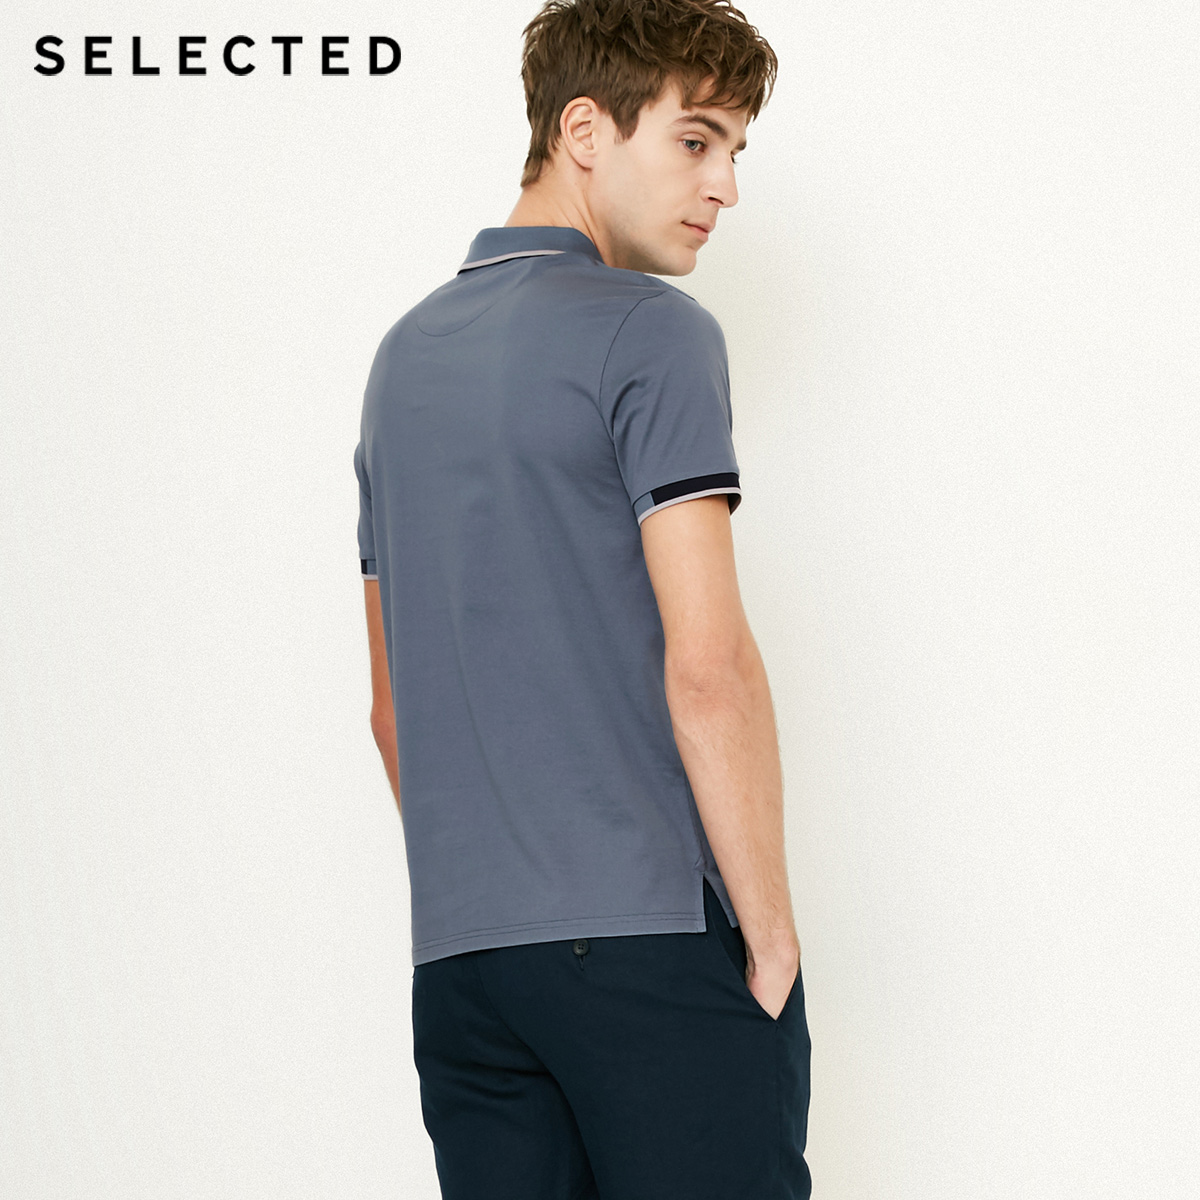 Image 3 - SELECTED  Mens Cotton Color Splicing Leisure  Collar Poloshit S41823Z523T-Shirts